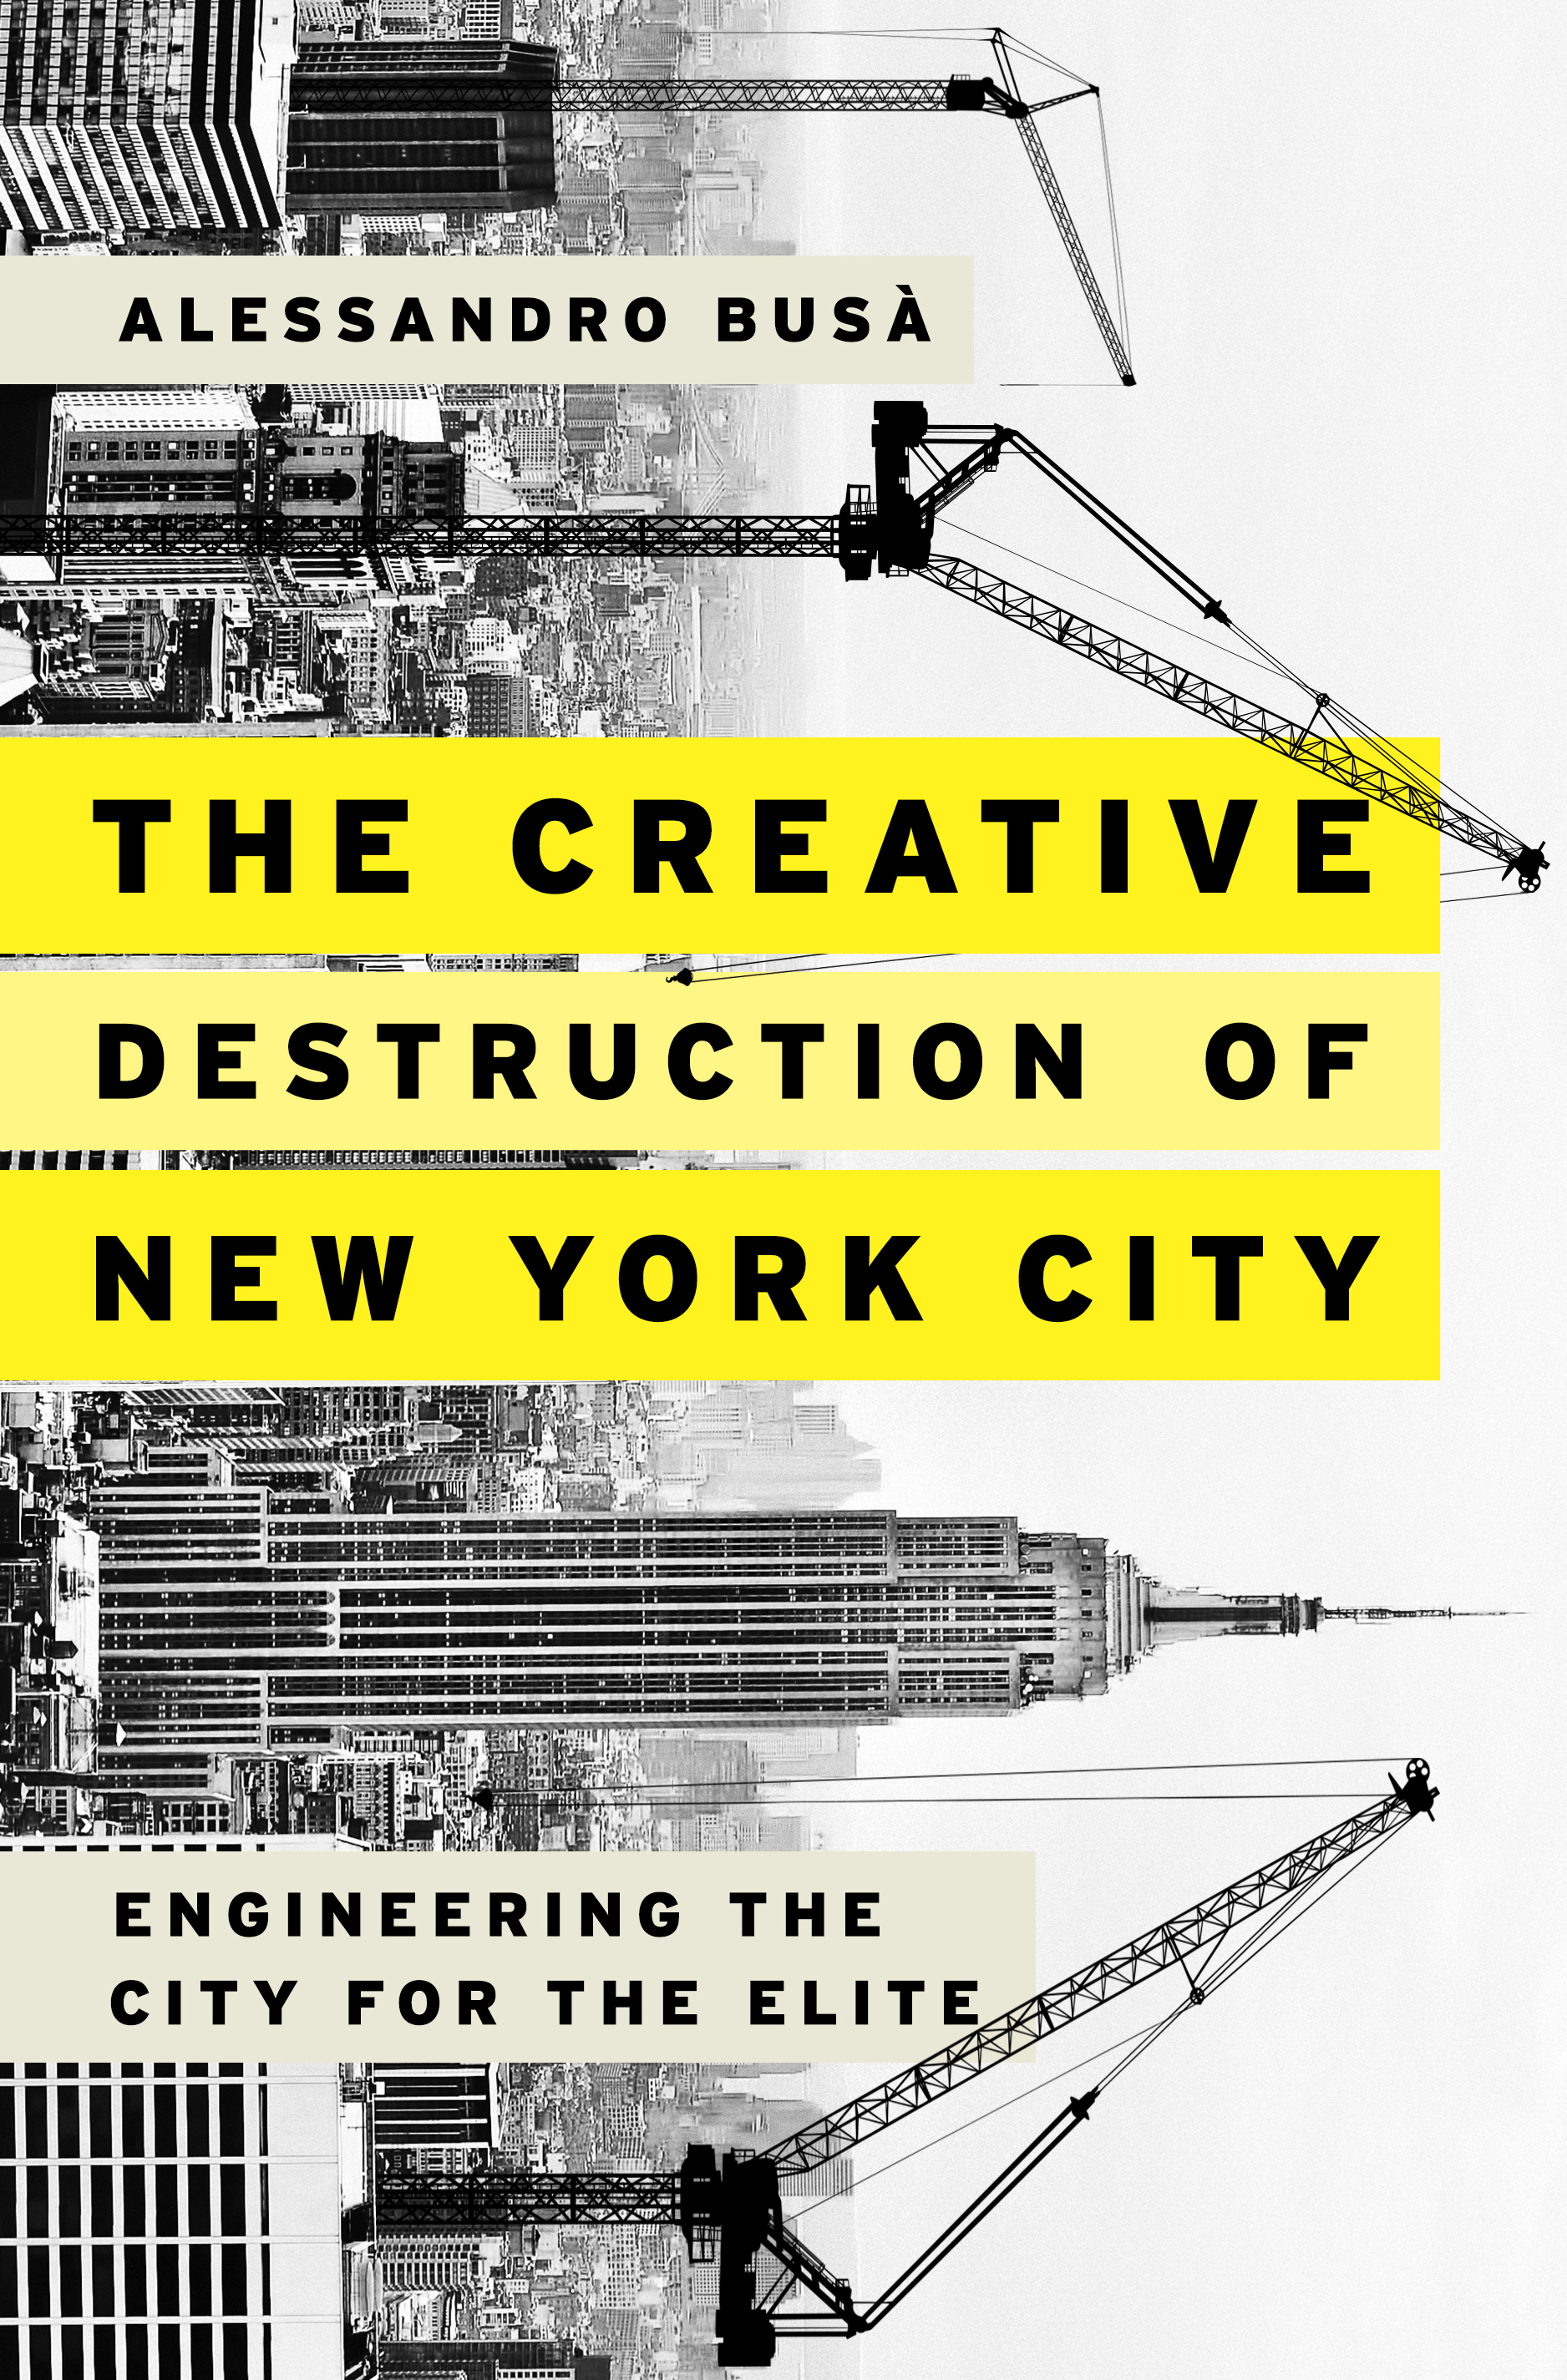 The Creative Destruction of New York City Engineering the City for the Elite